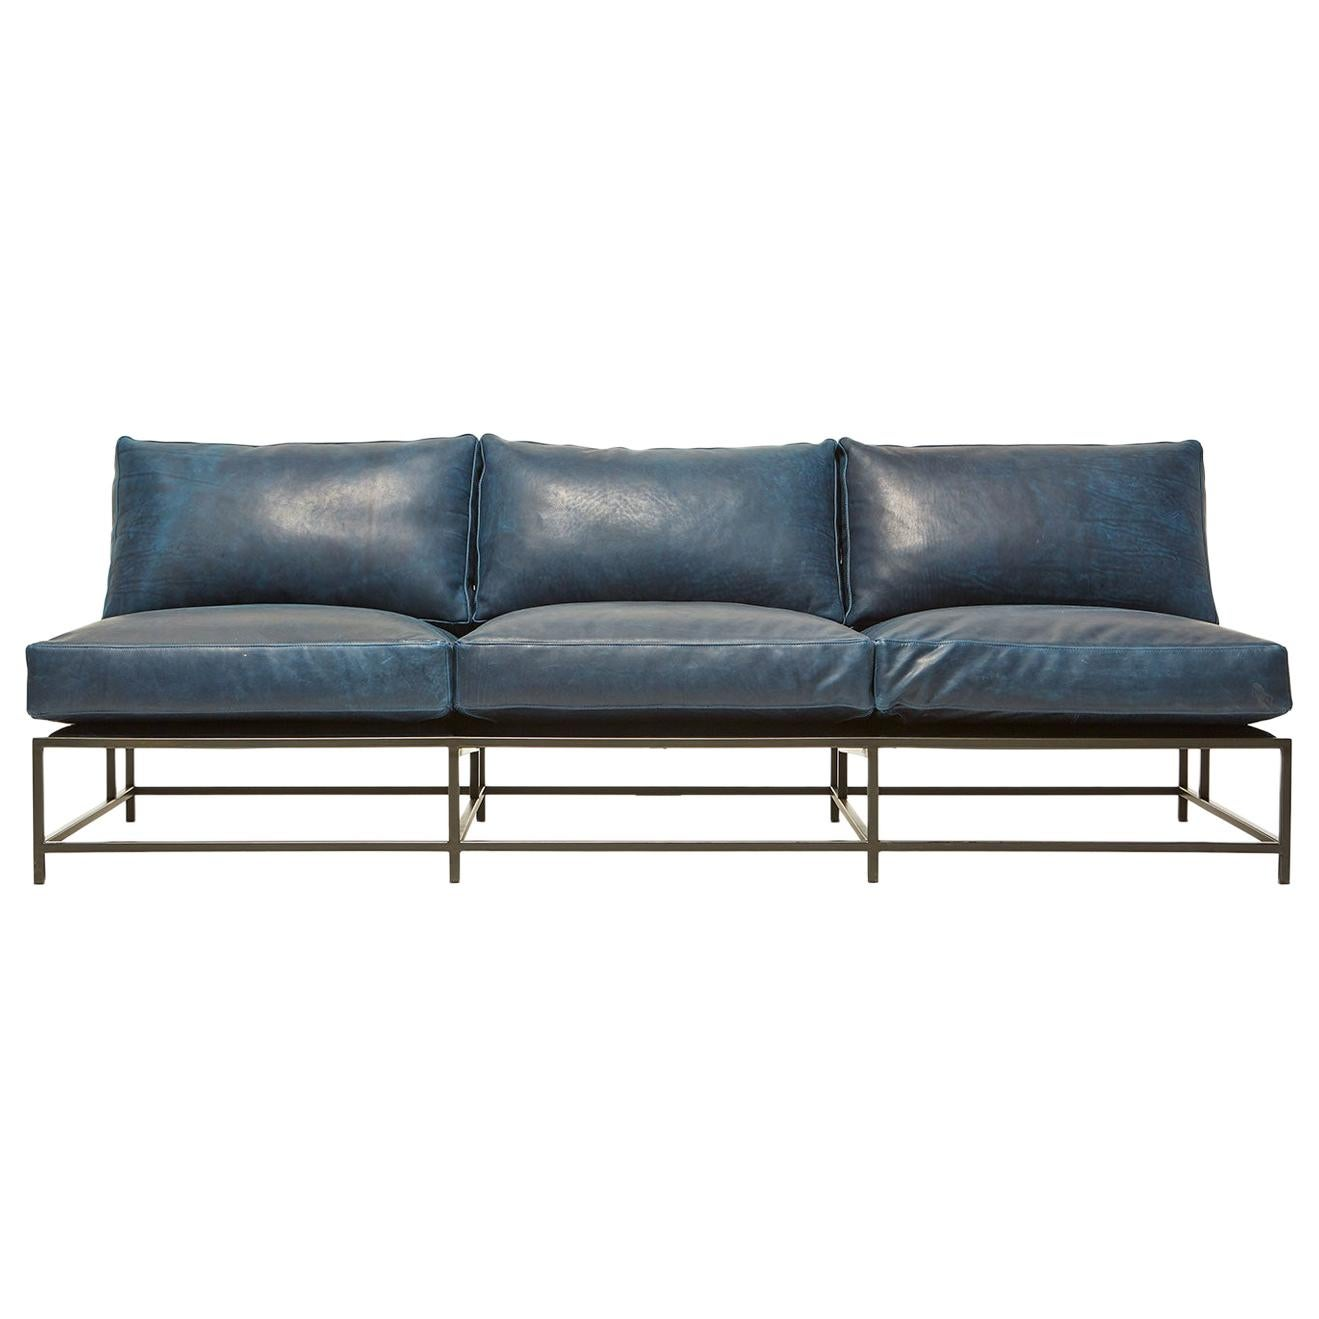 brentwood navy leather and blackened steel armless sofa